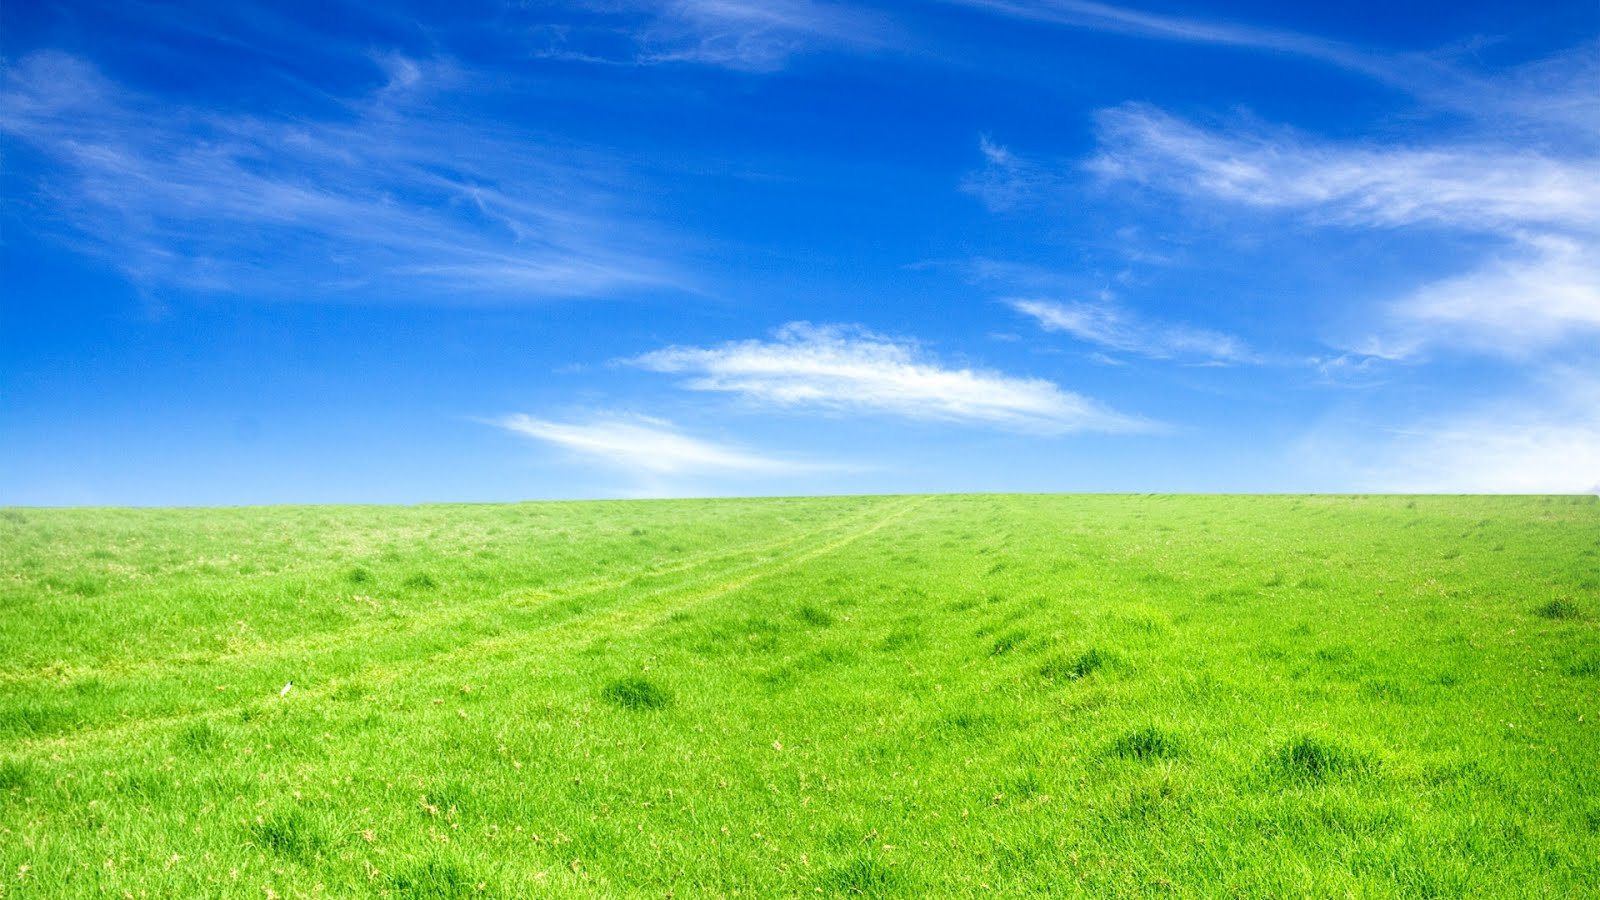 grass wallpaper windows